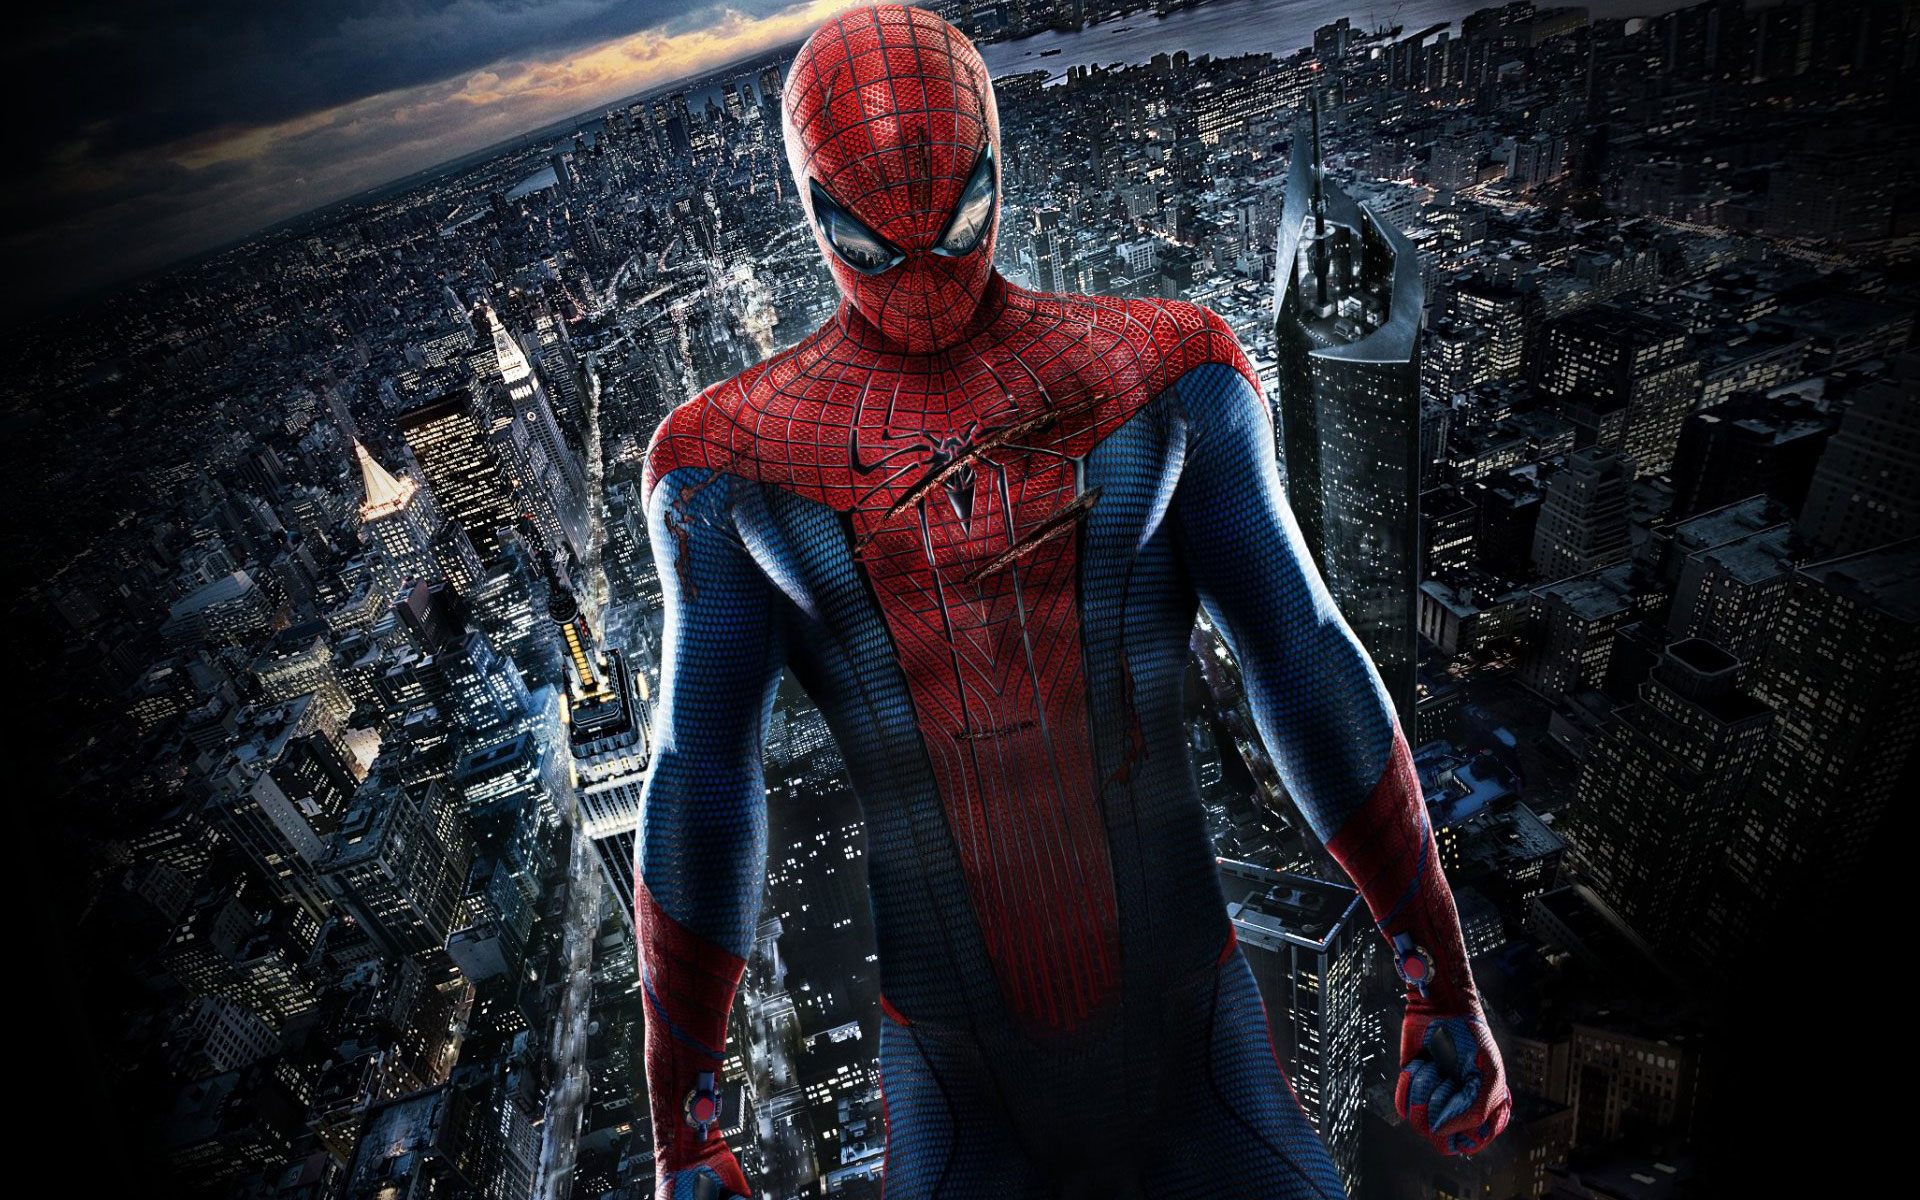 the amazing spiderman 4 hd wallpapers free download desktop spiderman images background